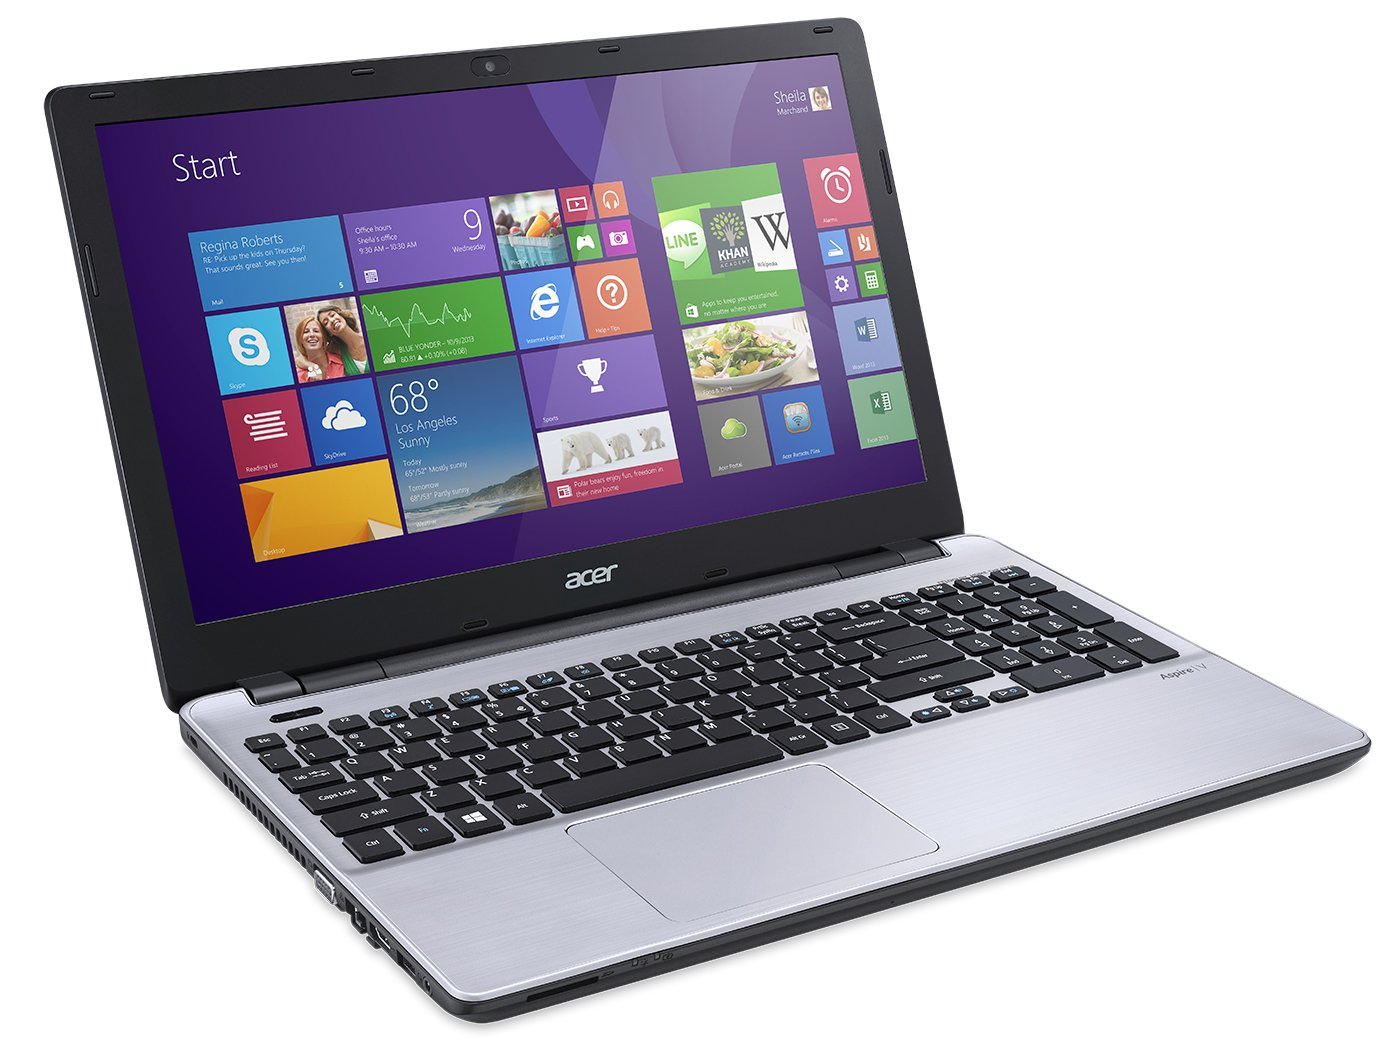 Acer Aspire V3-572G Synaptics Touchpad Drivers for Windows Mac